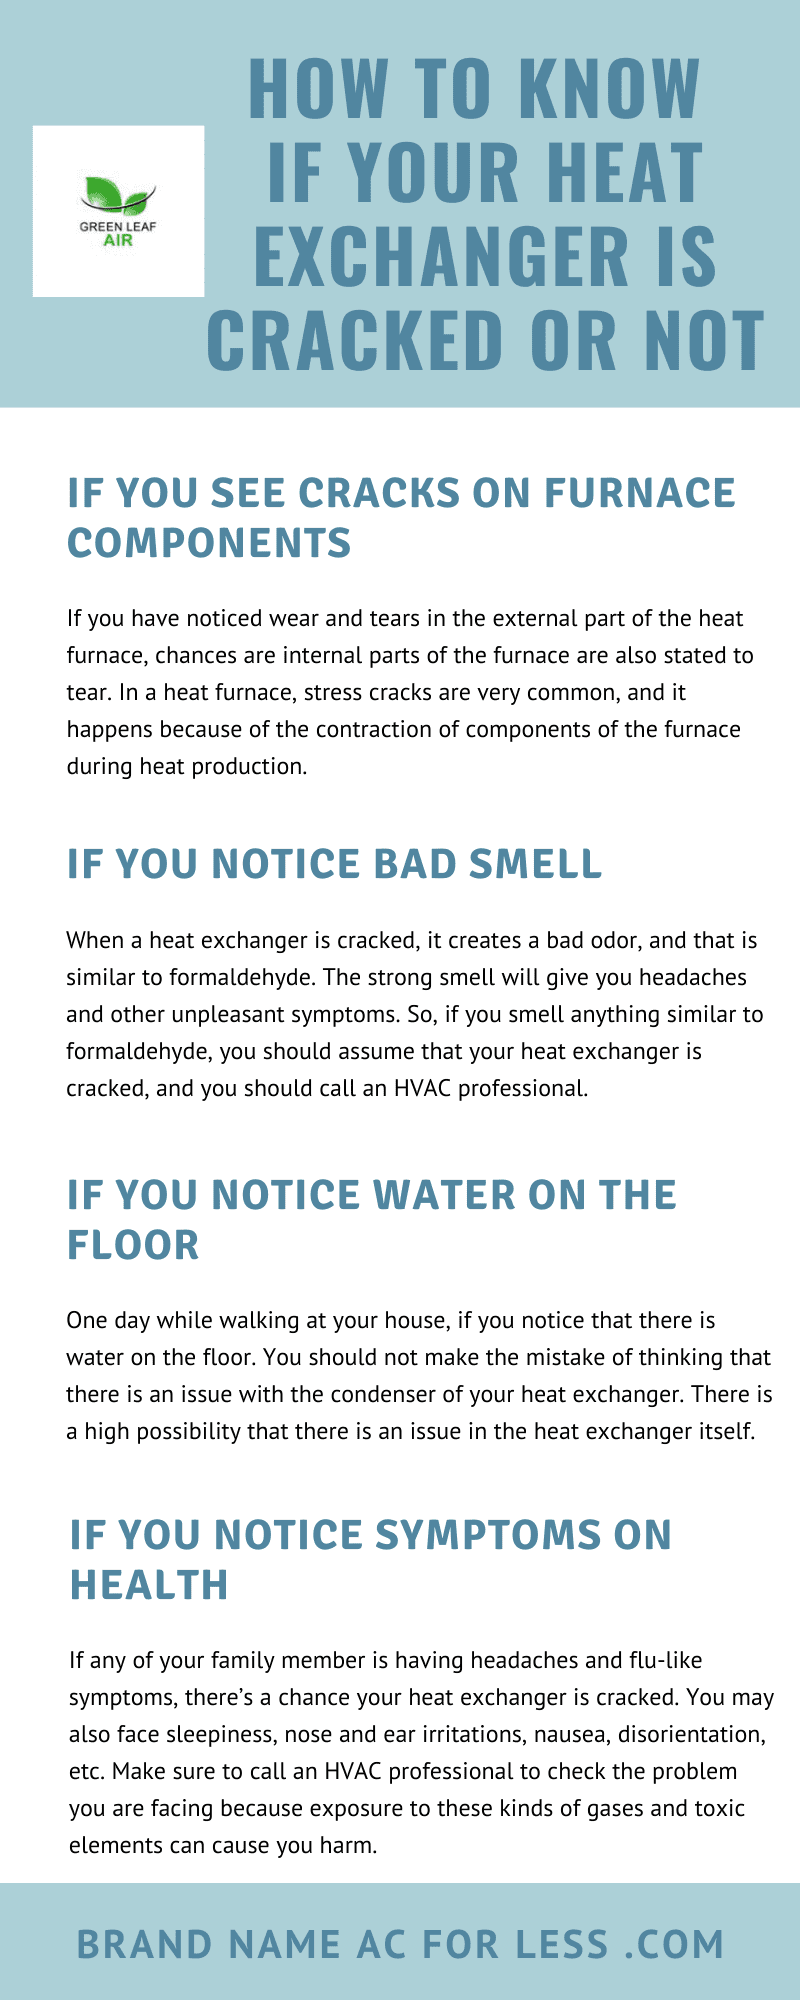 How to Know If Your Heat Exchanger Is Cracked Or Not